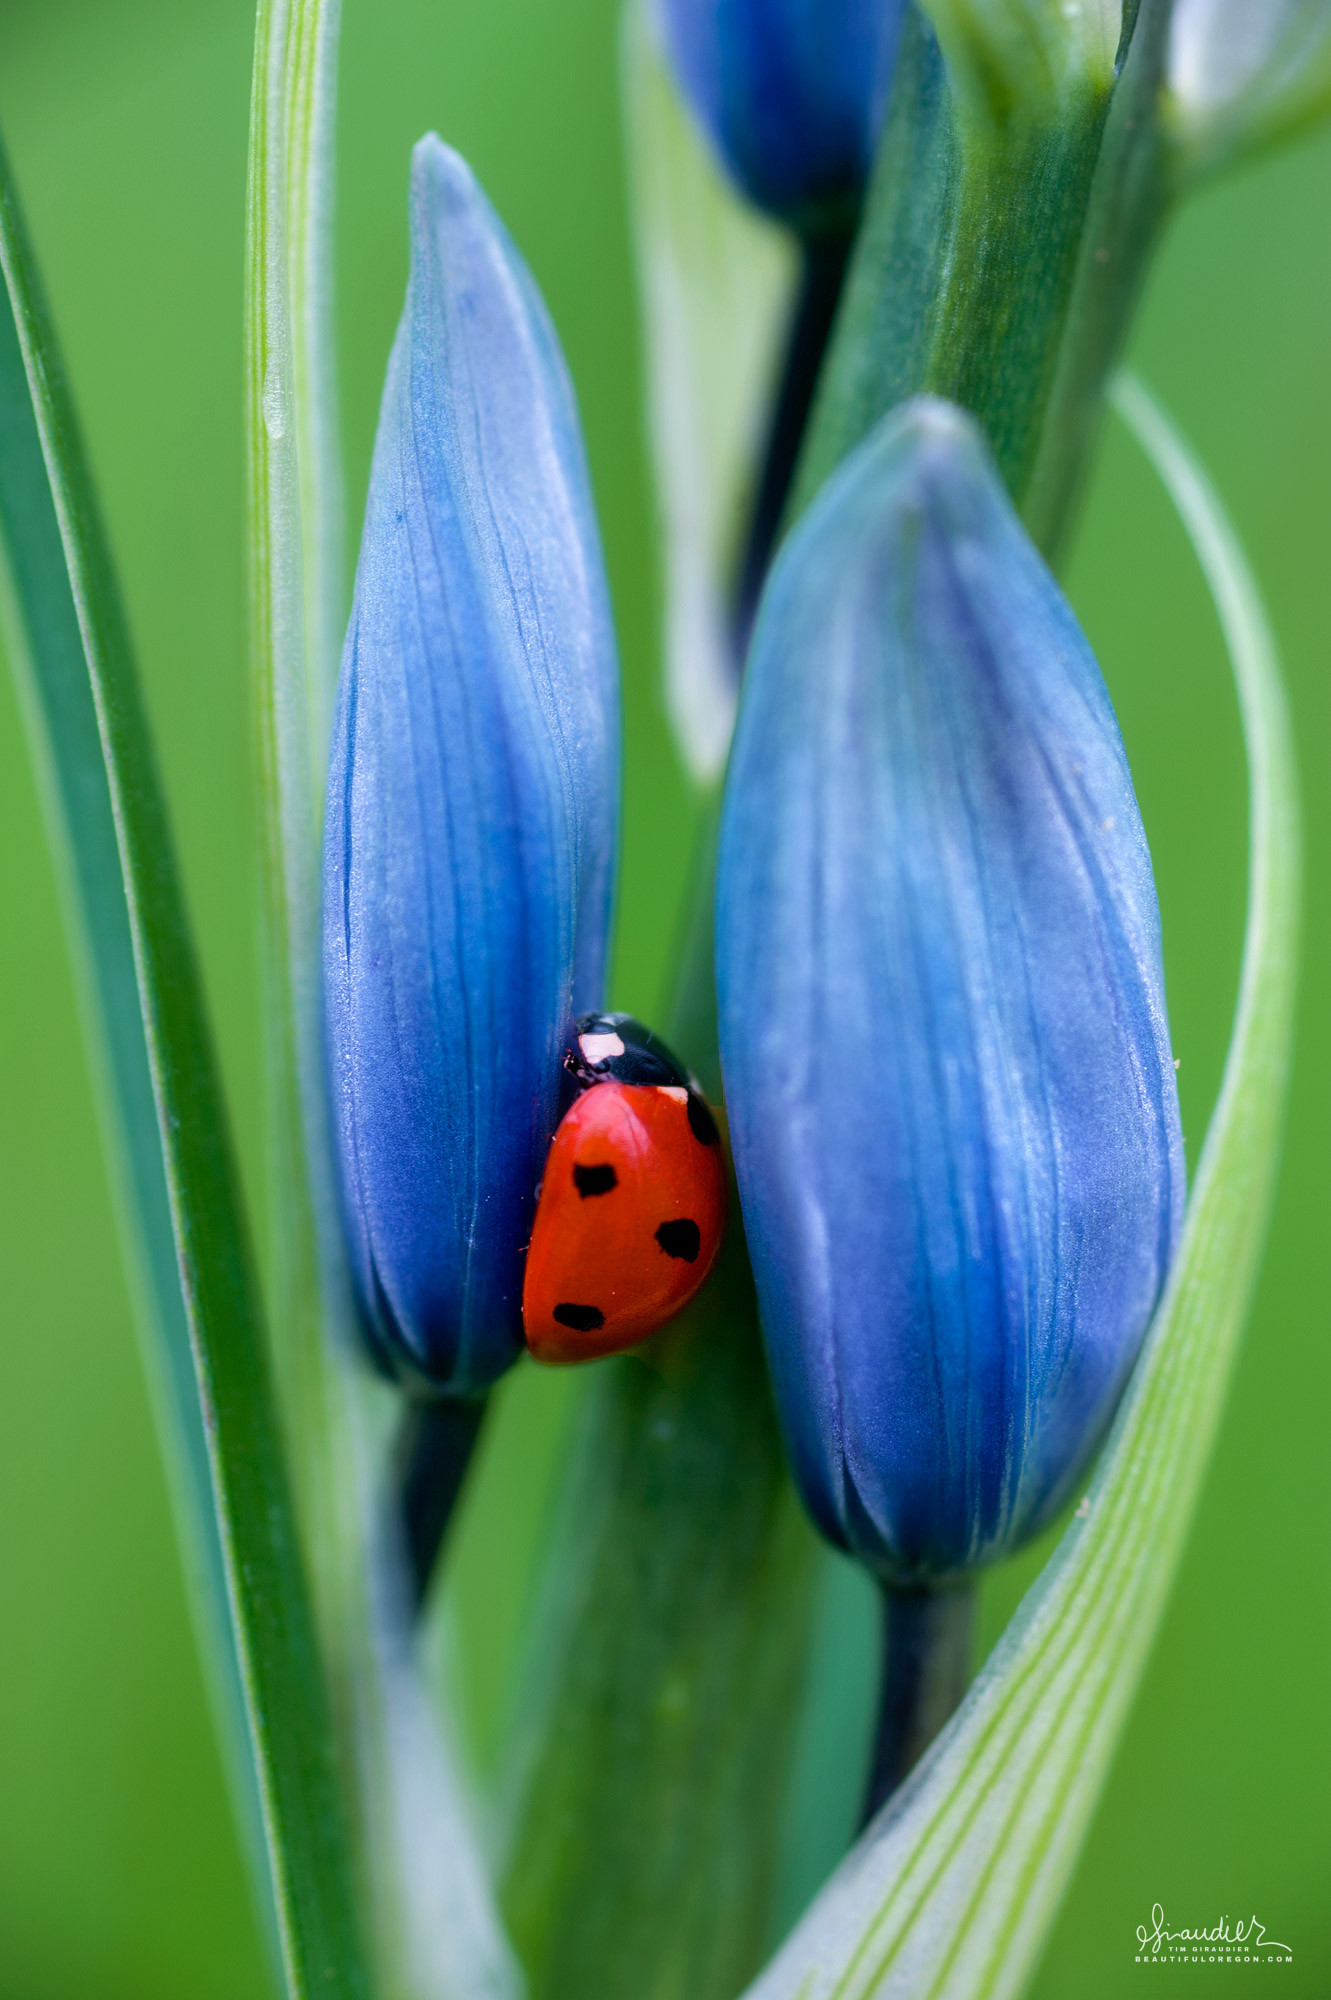 A Seven-spot Ladybug (Coccinella septempunctata) nestles itself amongst the buds of a Camas Lily at Mount Pisgah Arboretum.